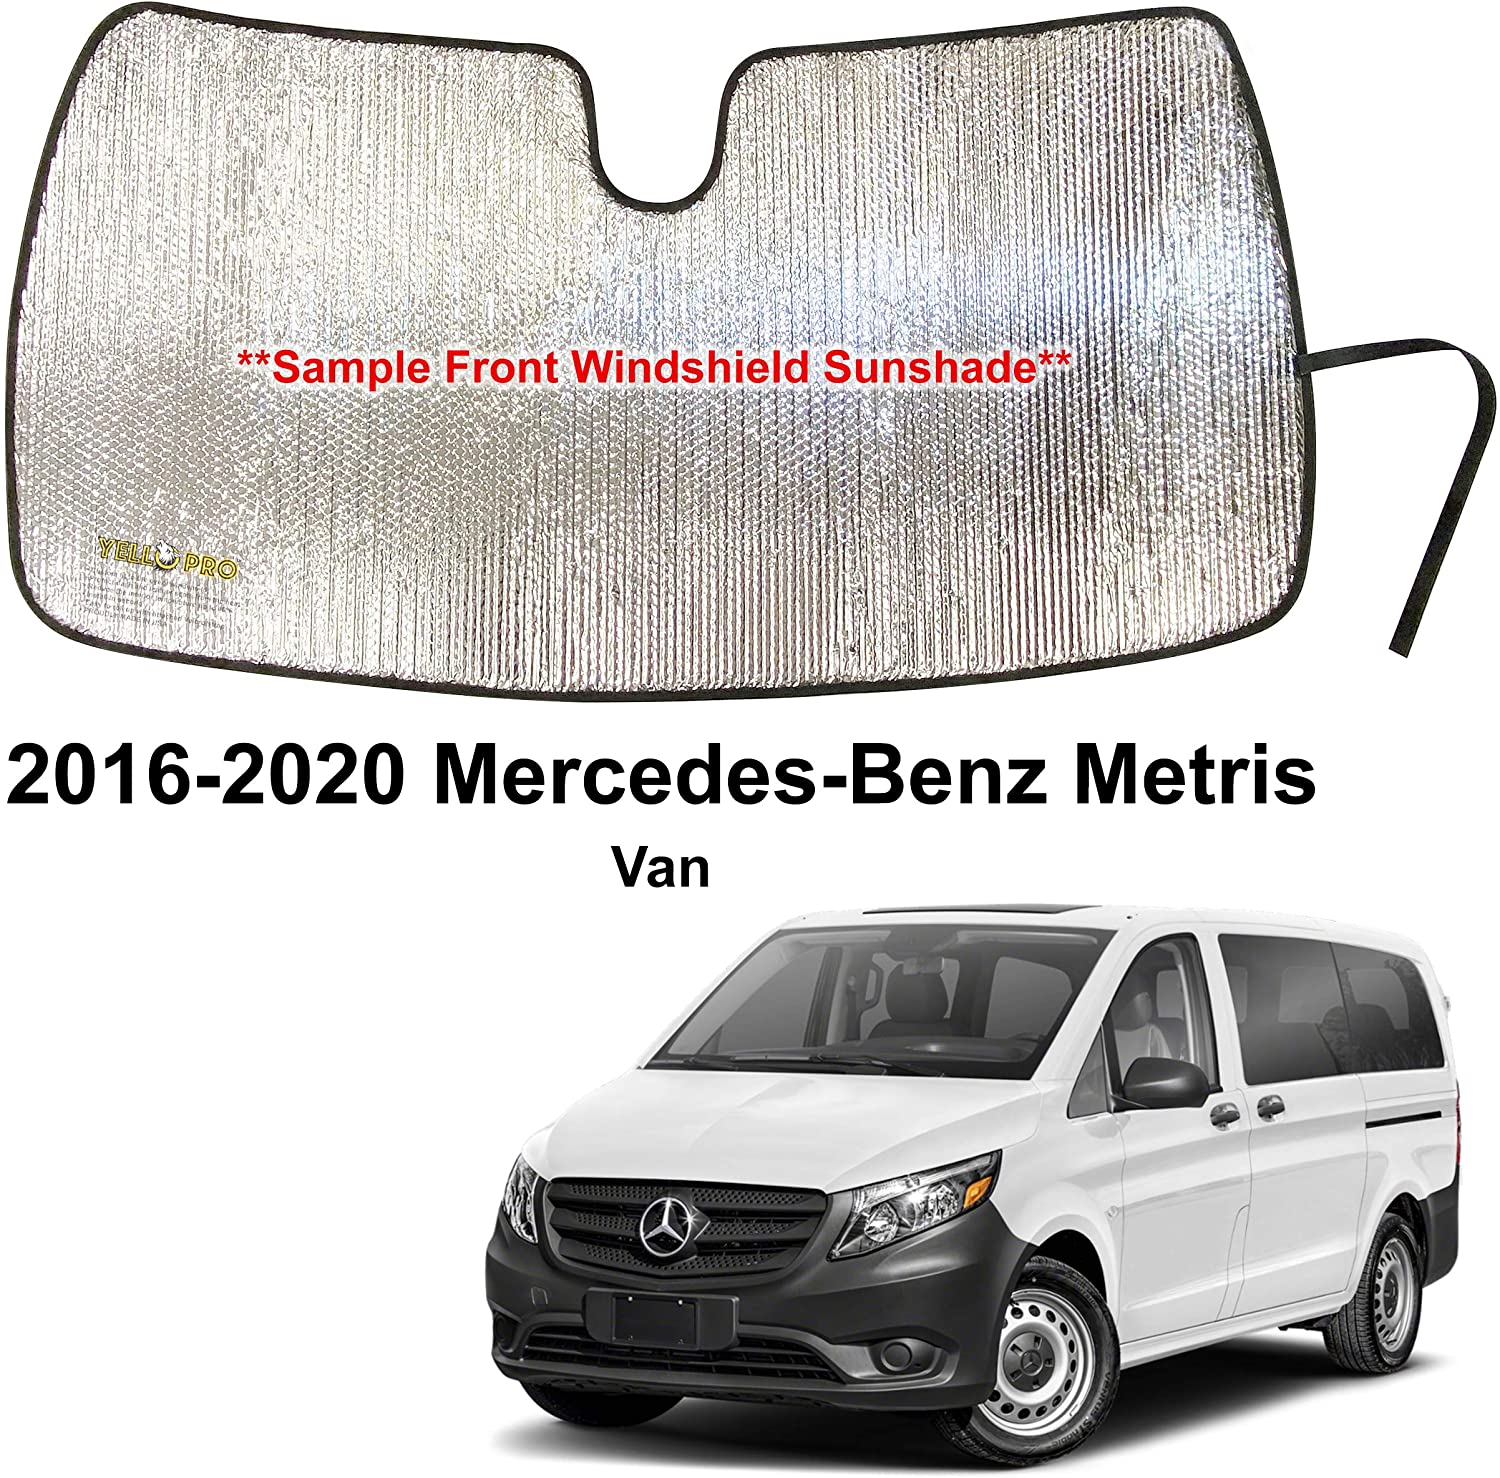 YelloPro Custom Fit Automotive Reflective Front Windshield Sunshade Accessories UV Reflector Sun Protection for 2016 2017 2018 2019 2020 Mercedes Benz Metris Van